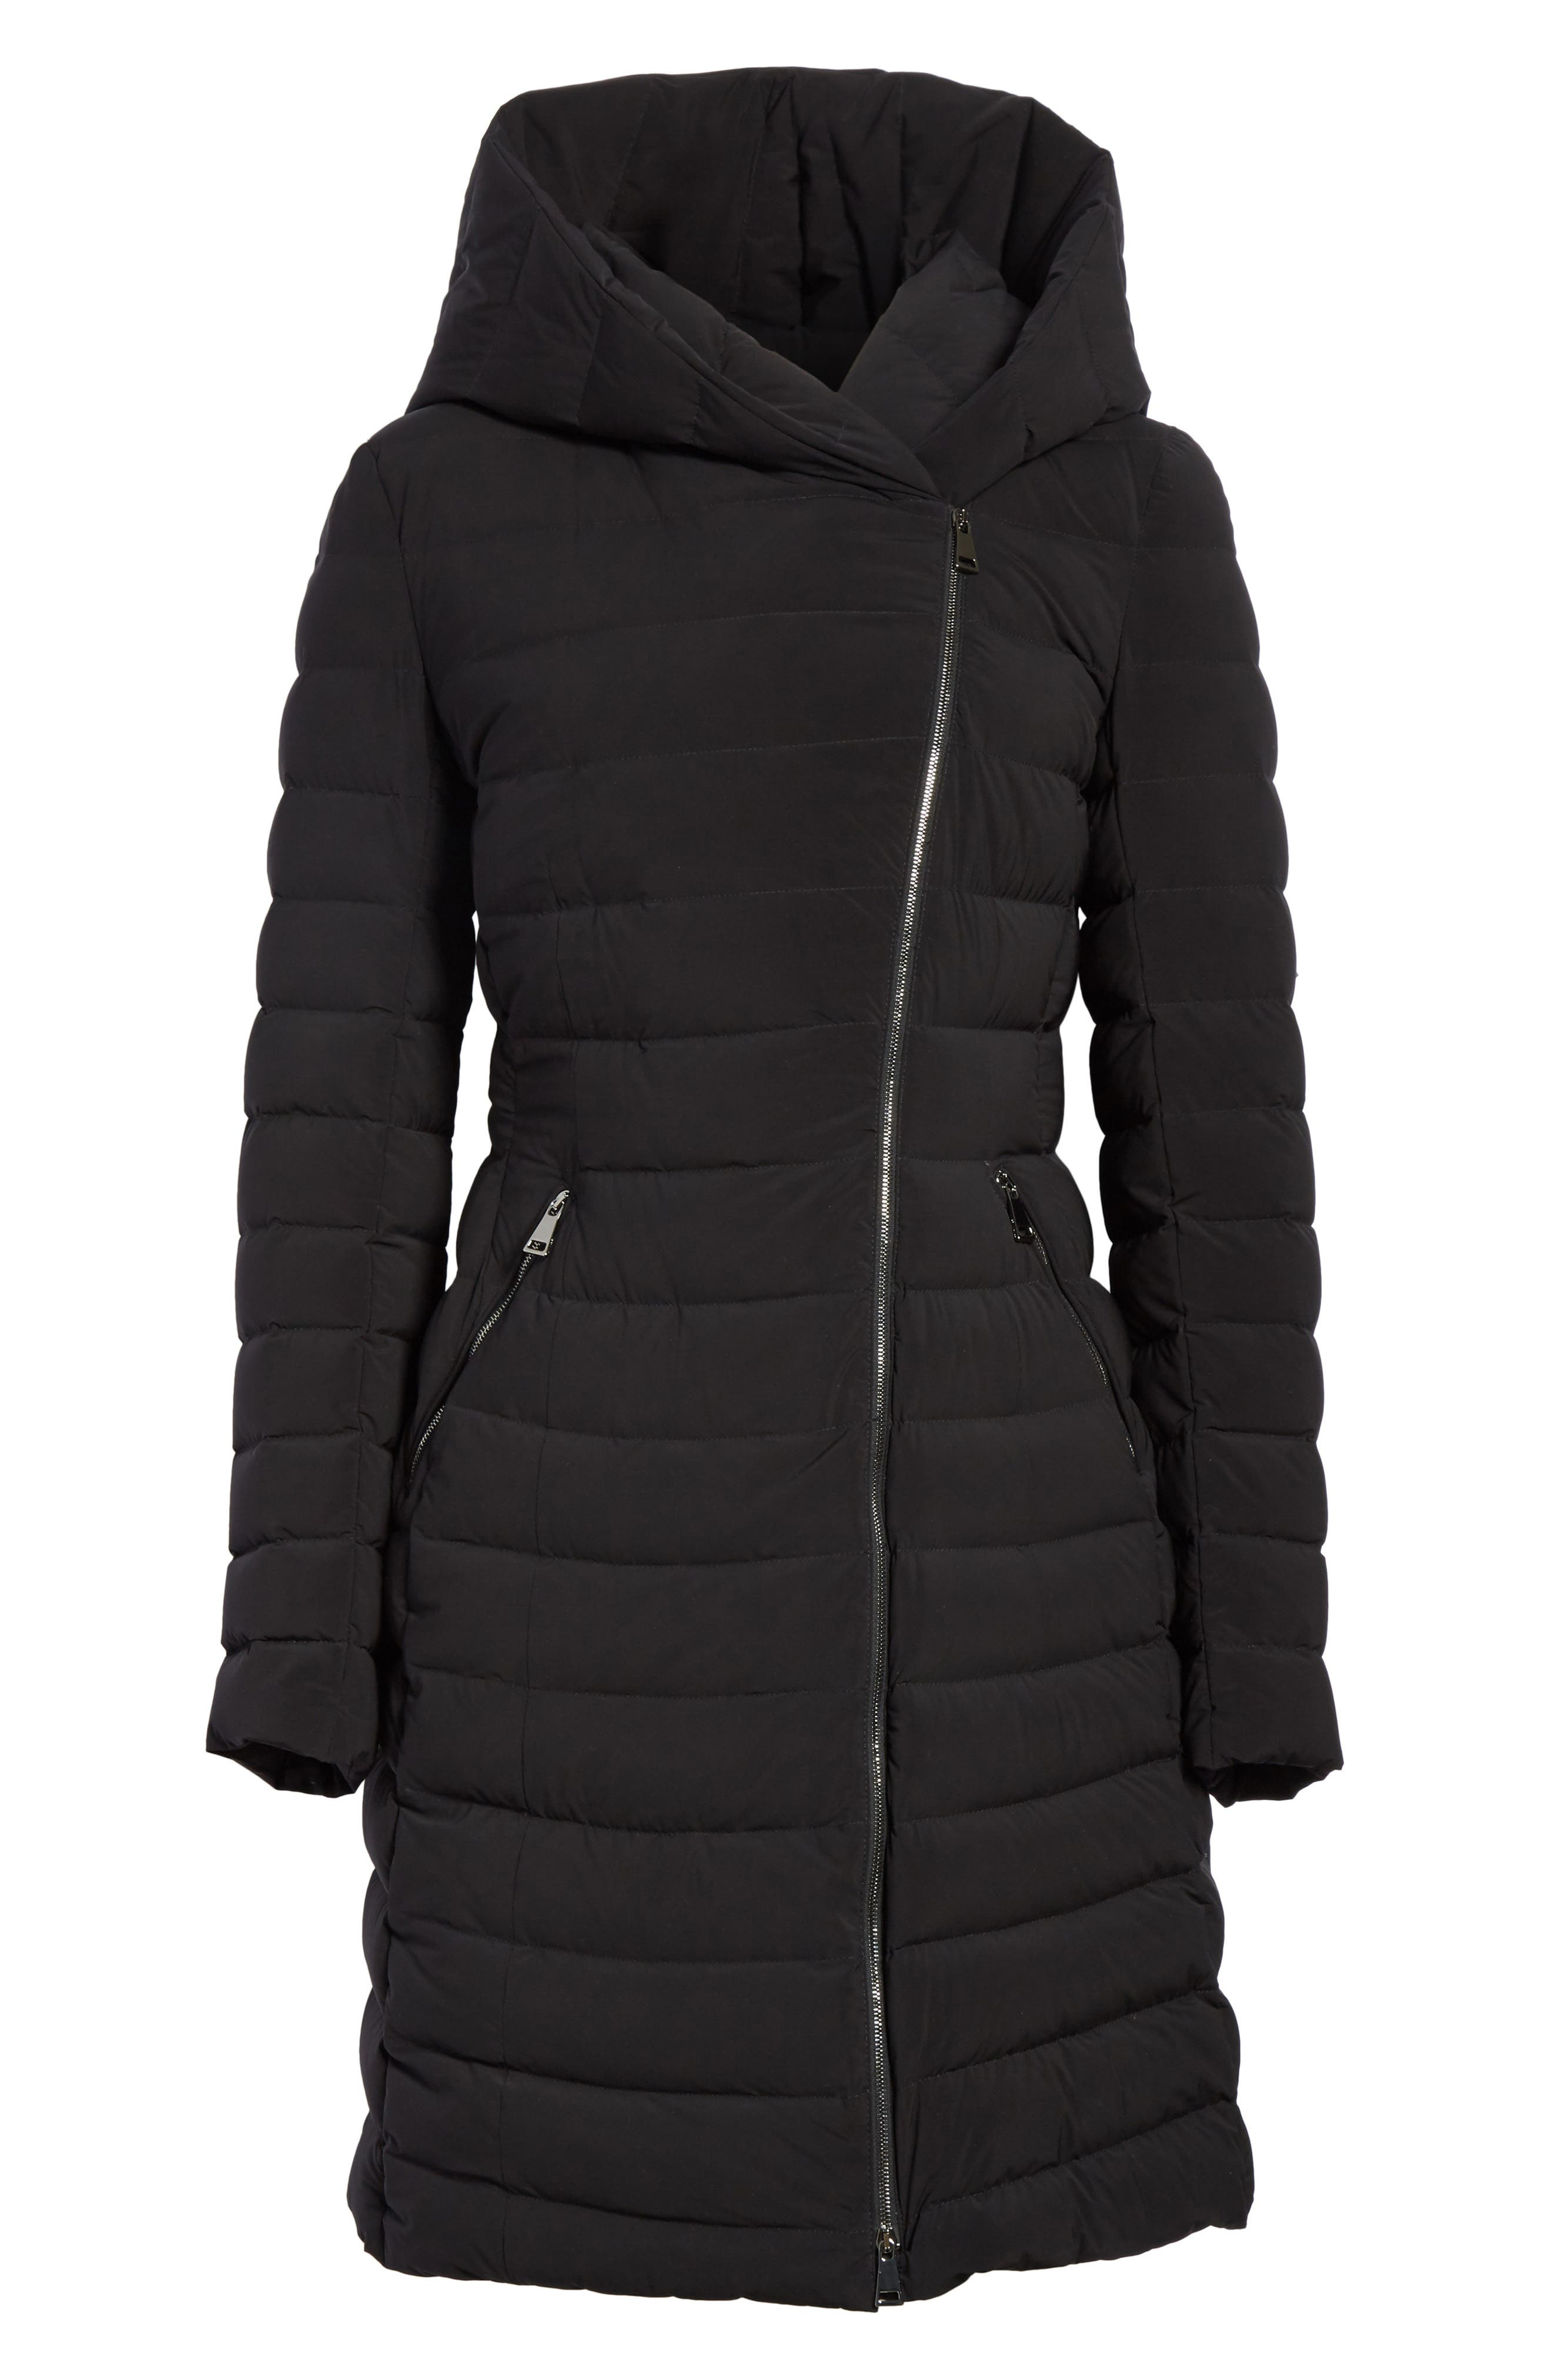 Barge Quilted Down Coat,                             Alternate thumbnail 5, color,                             BLACK